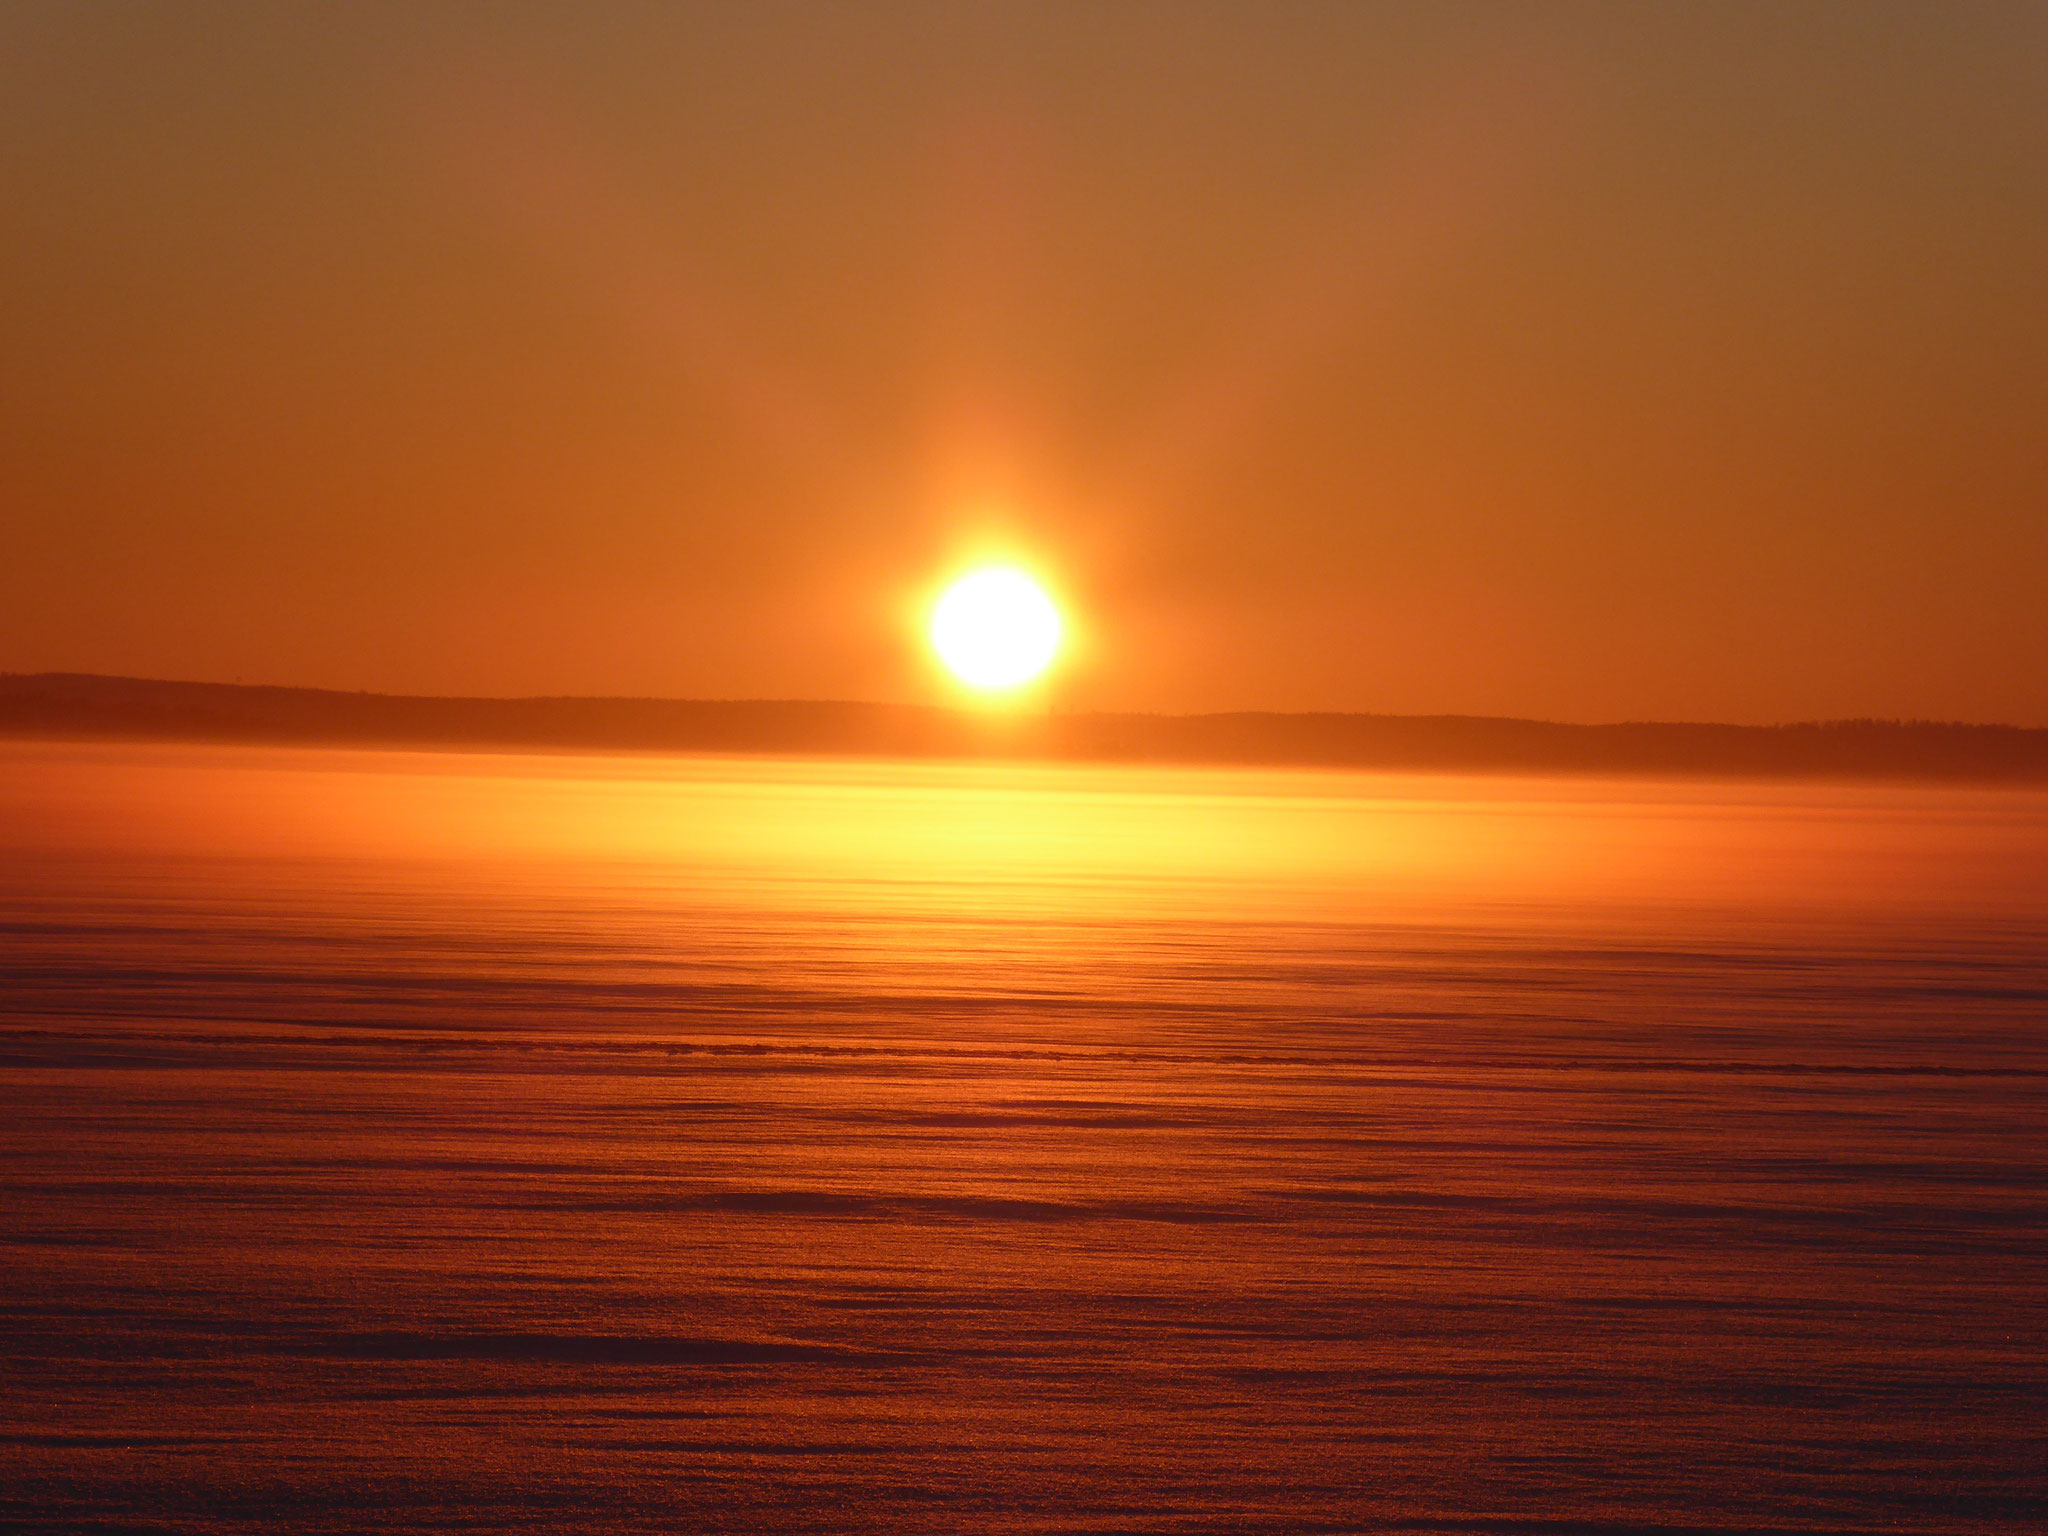 Amazing sunsets at frozen Lake Päijänne near the house ...